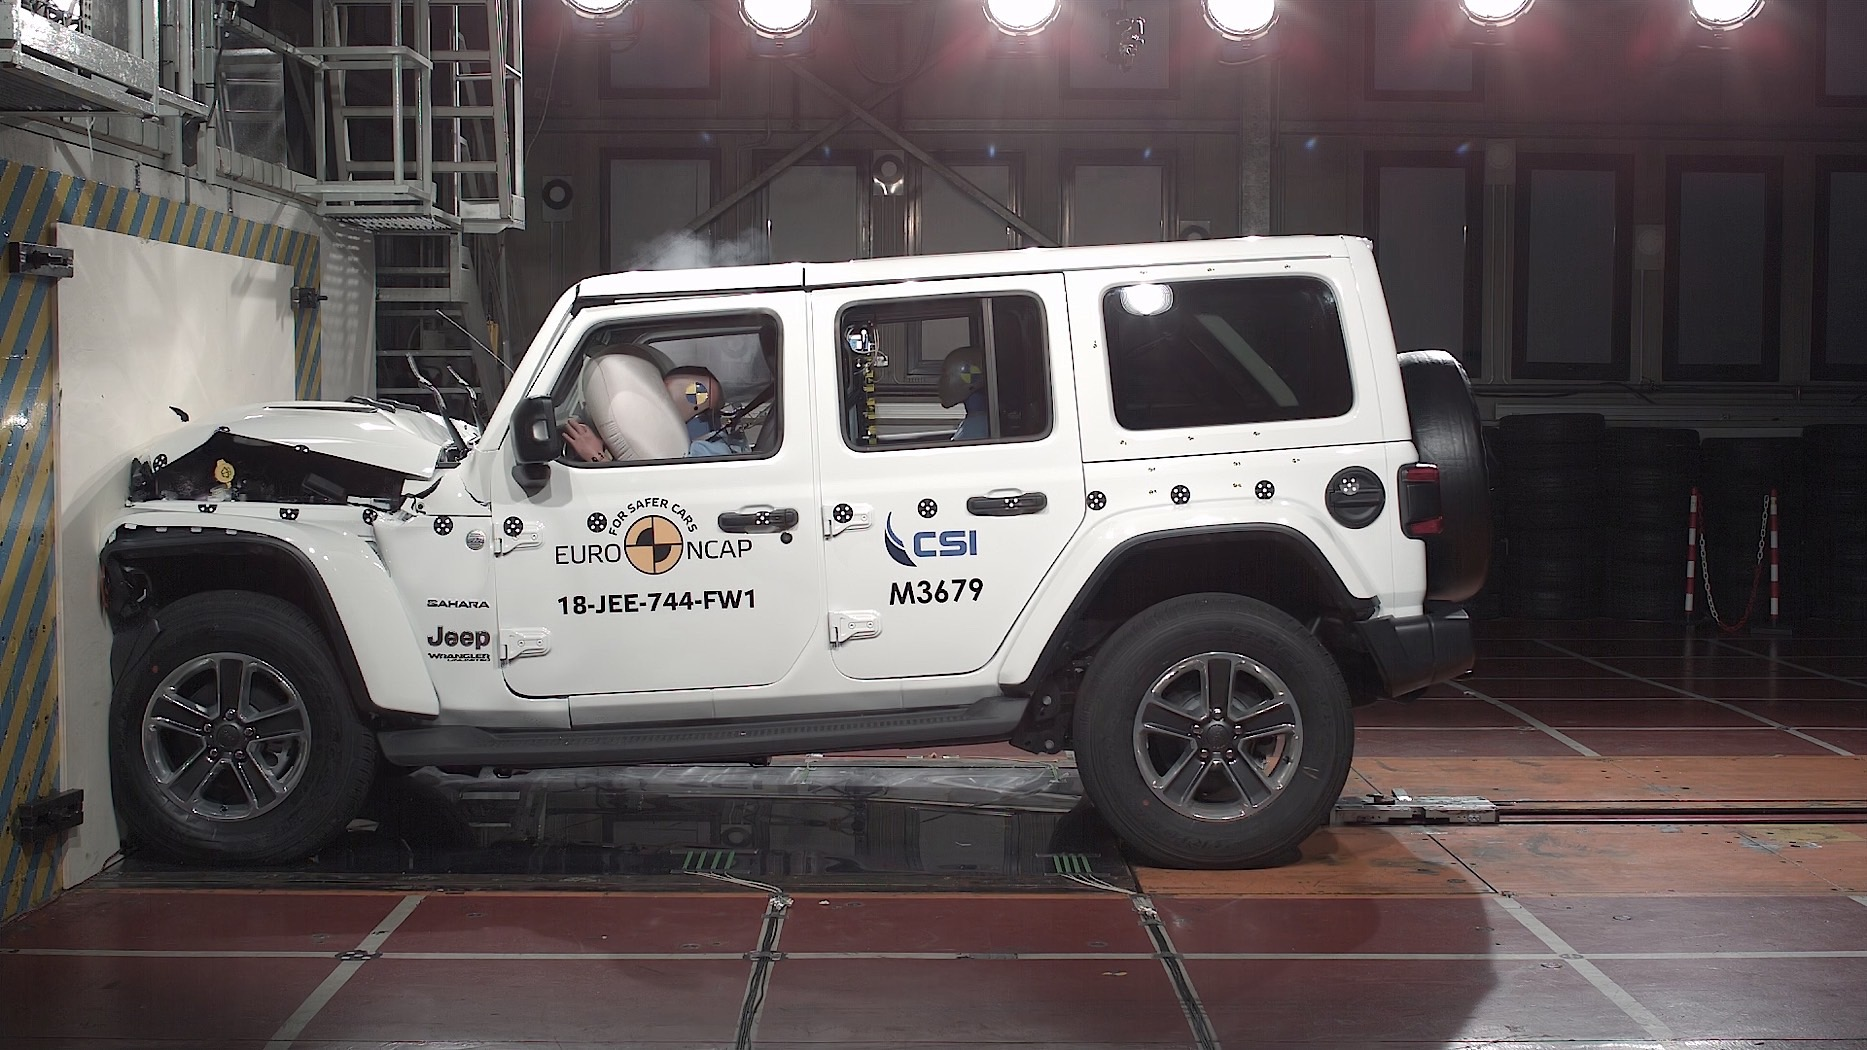 Jeep Wrangler JL bombs Euro NCAP crash tests with 1-star result